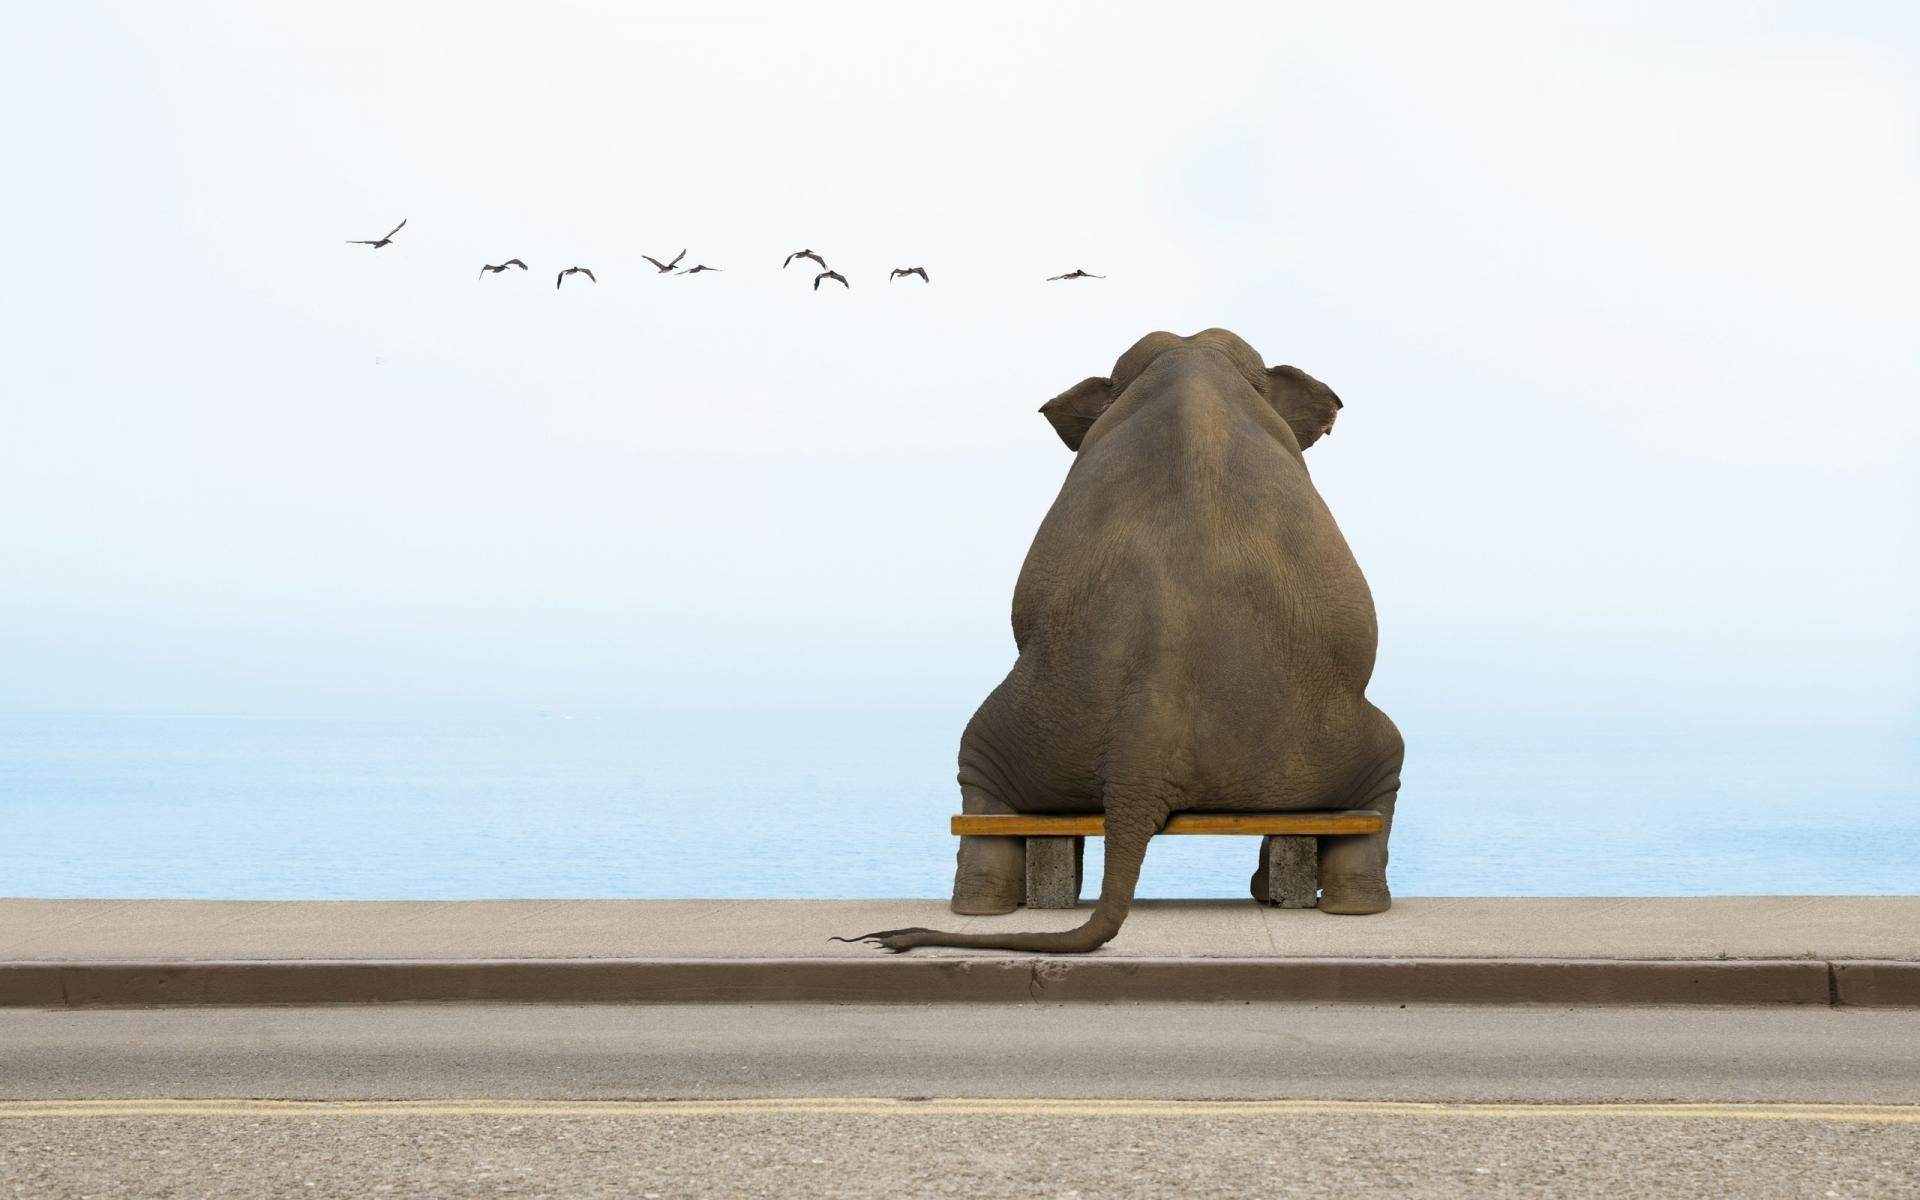 Funny Elephant Wallpapers,Backgrounds,Pictures,Photos